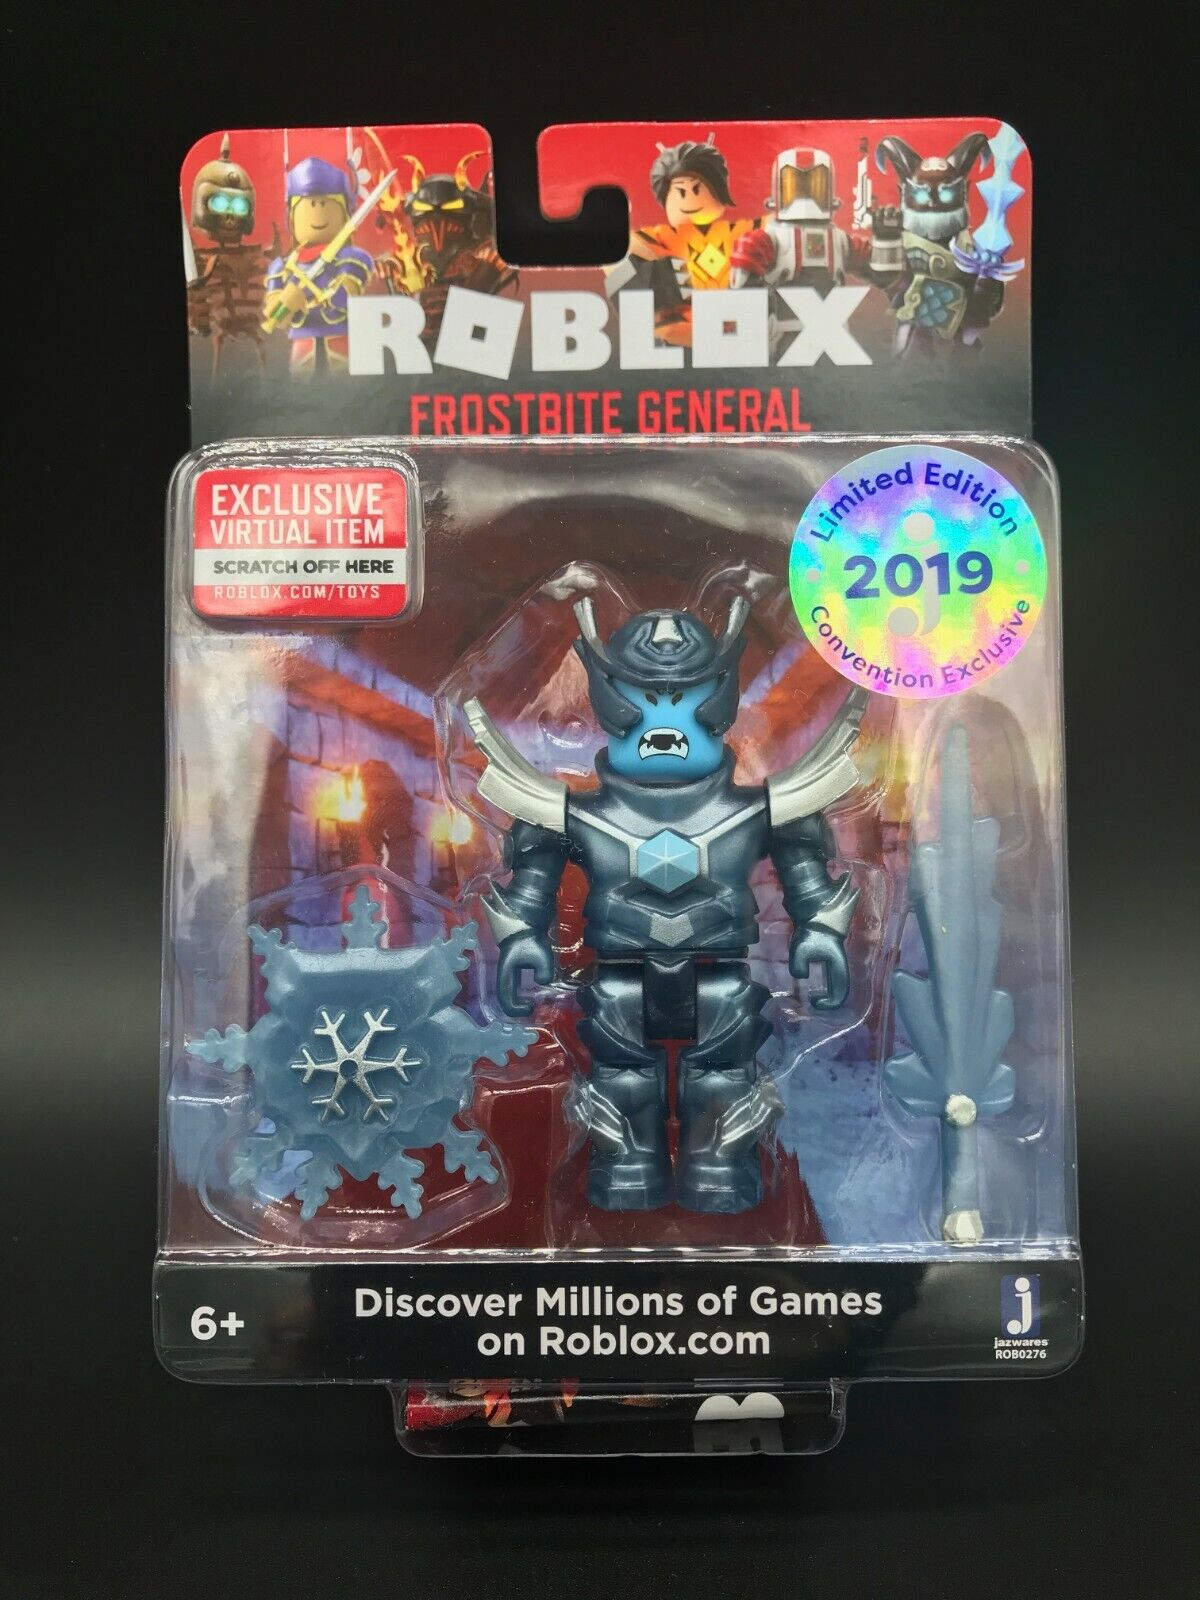 Roblox Toy Codes 2019 : roblox, codes, Gentle, Giant, ROBLOX, Frostbite, General, Figure, Online